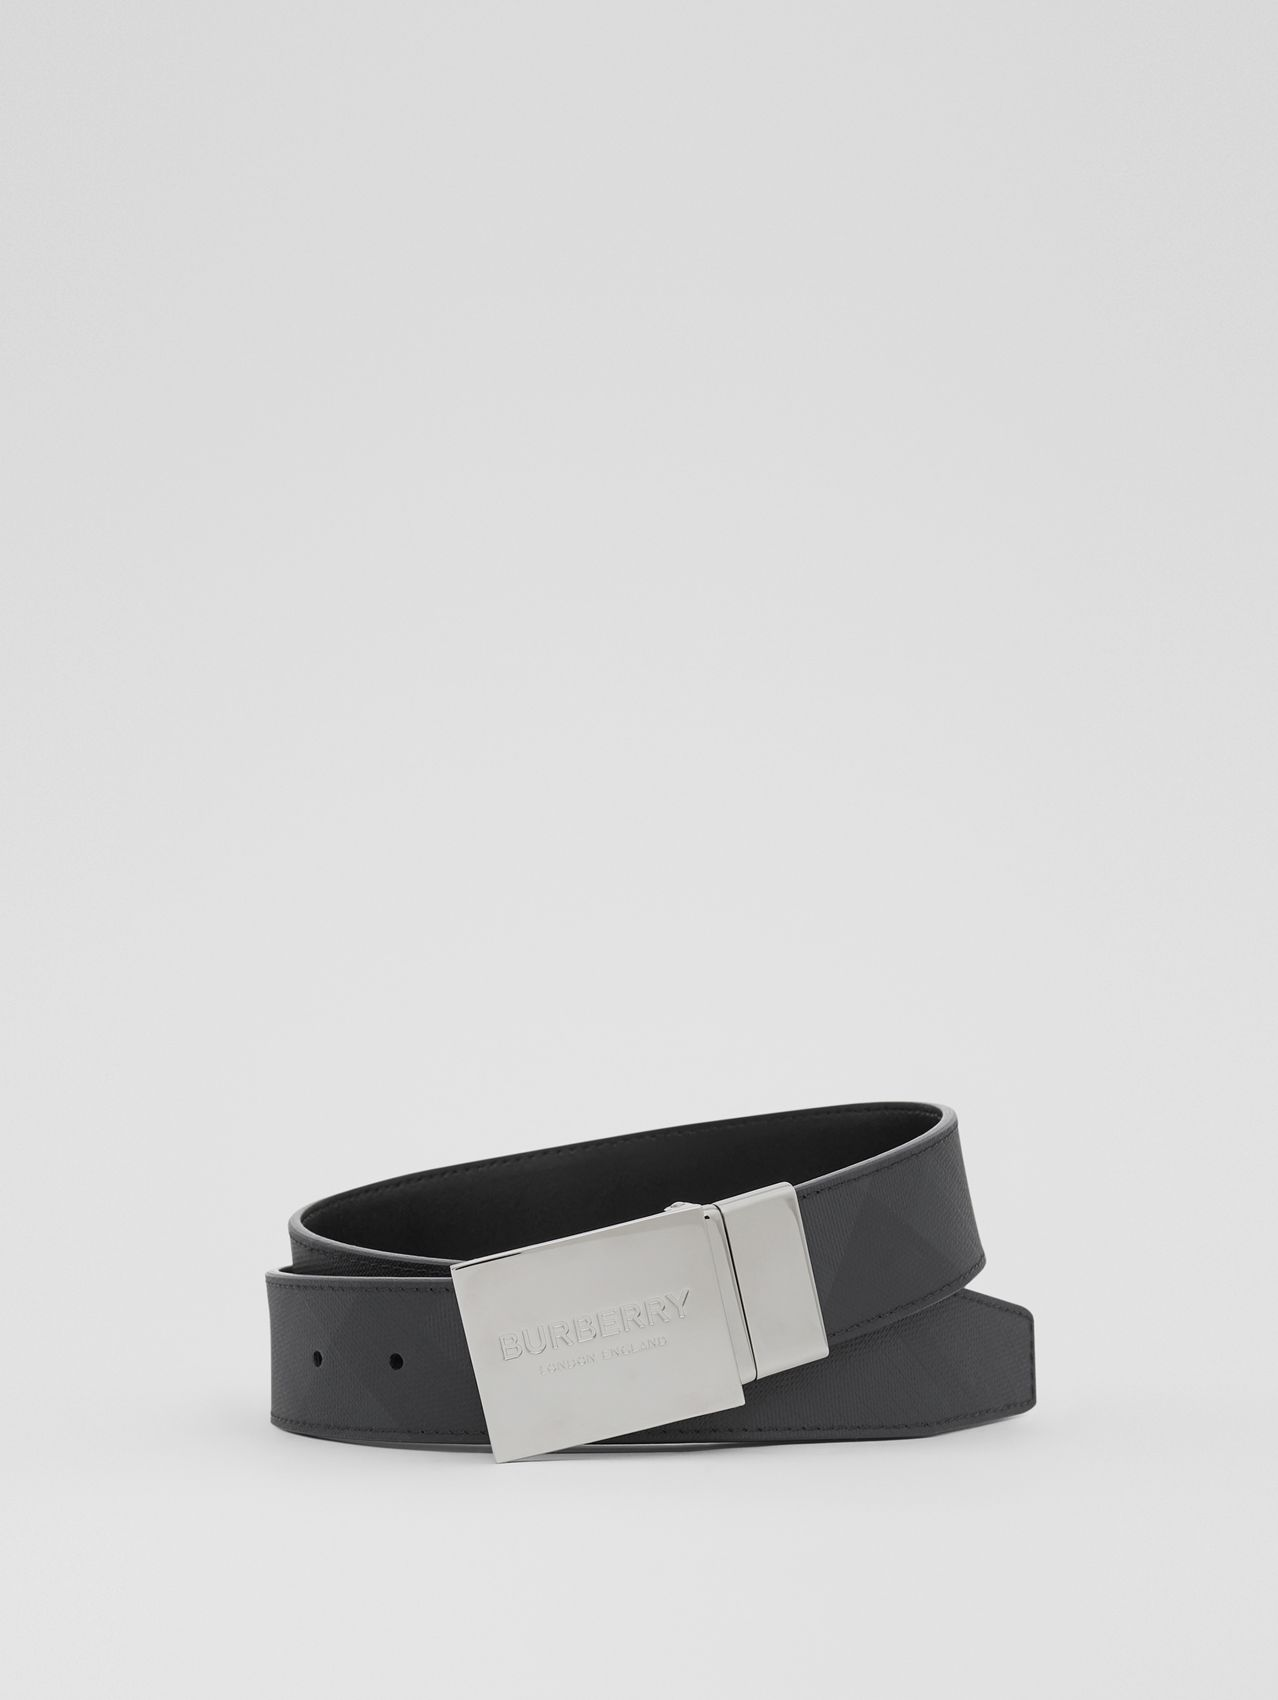 Reversible Plaque Buckle London Check Belt in Dark Charcoal / Black